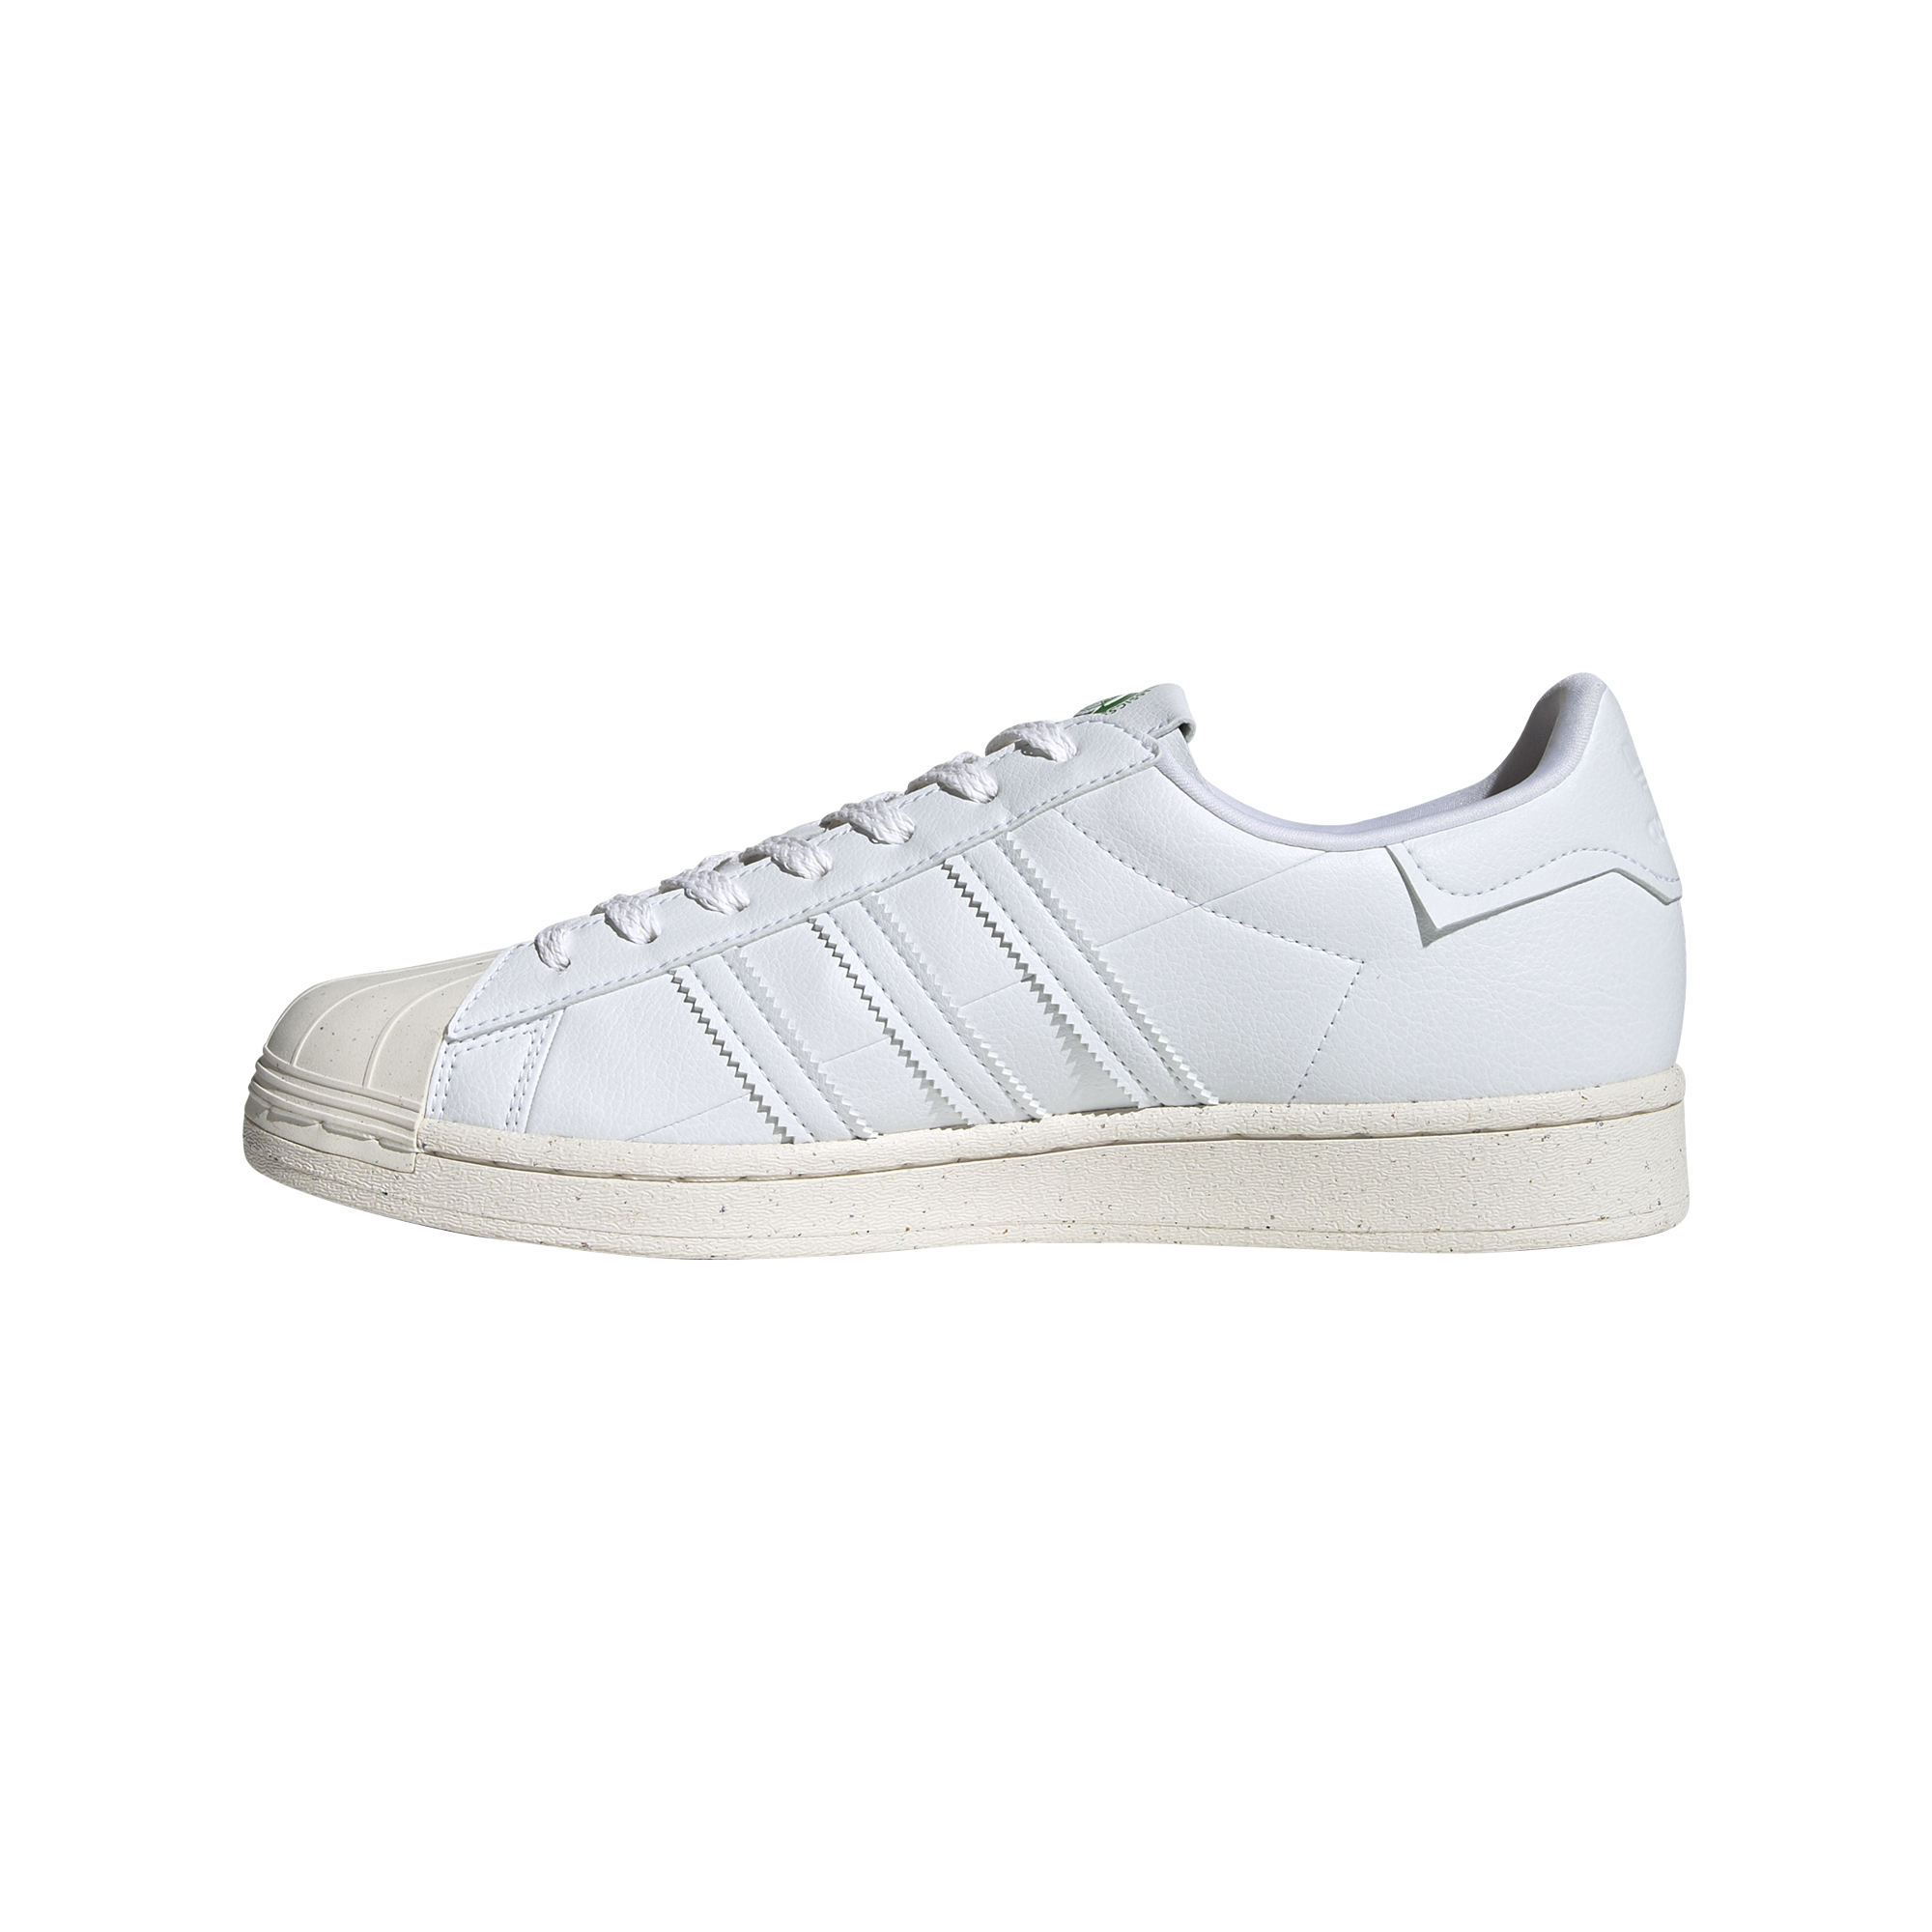 adidas Superstar Clean Classics Ftw White/ Off White/ Green EUR 38